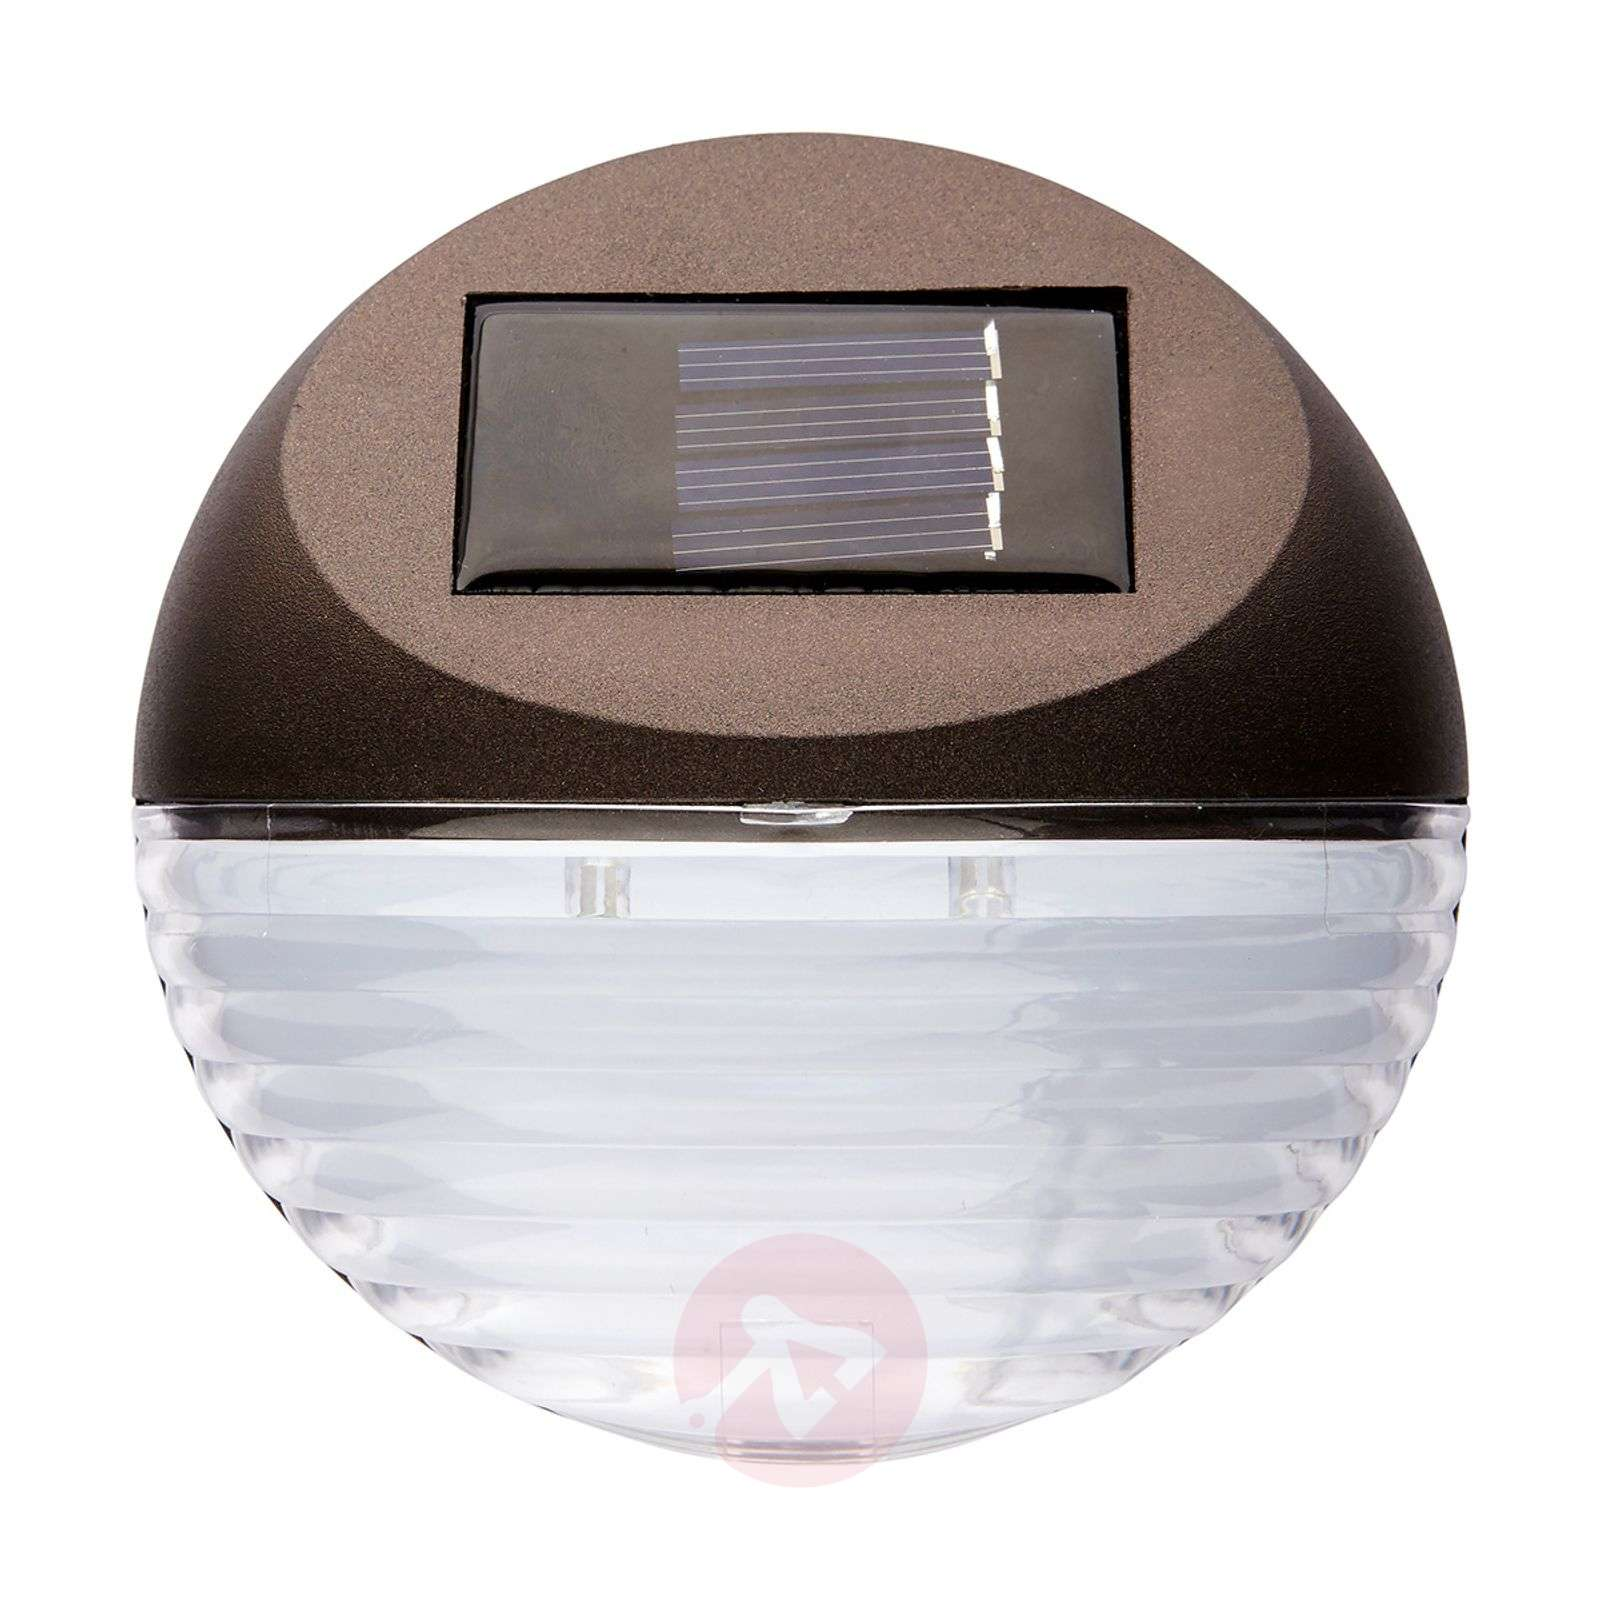 Fency LED solar wall light in set of 3-1523069-01